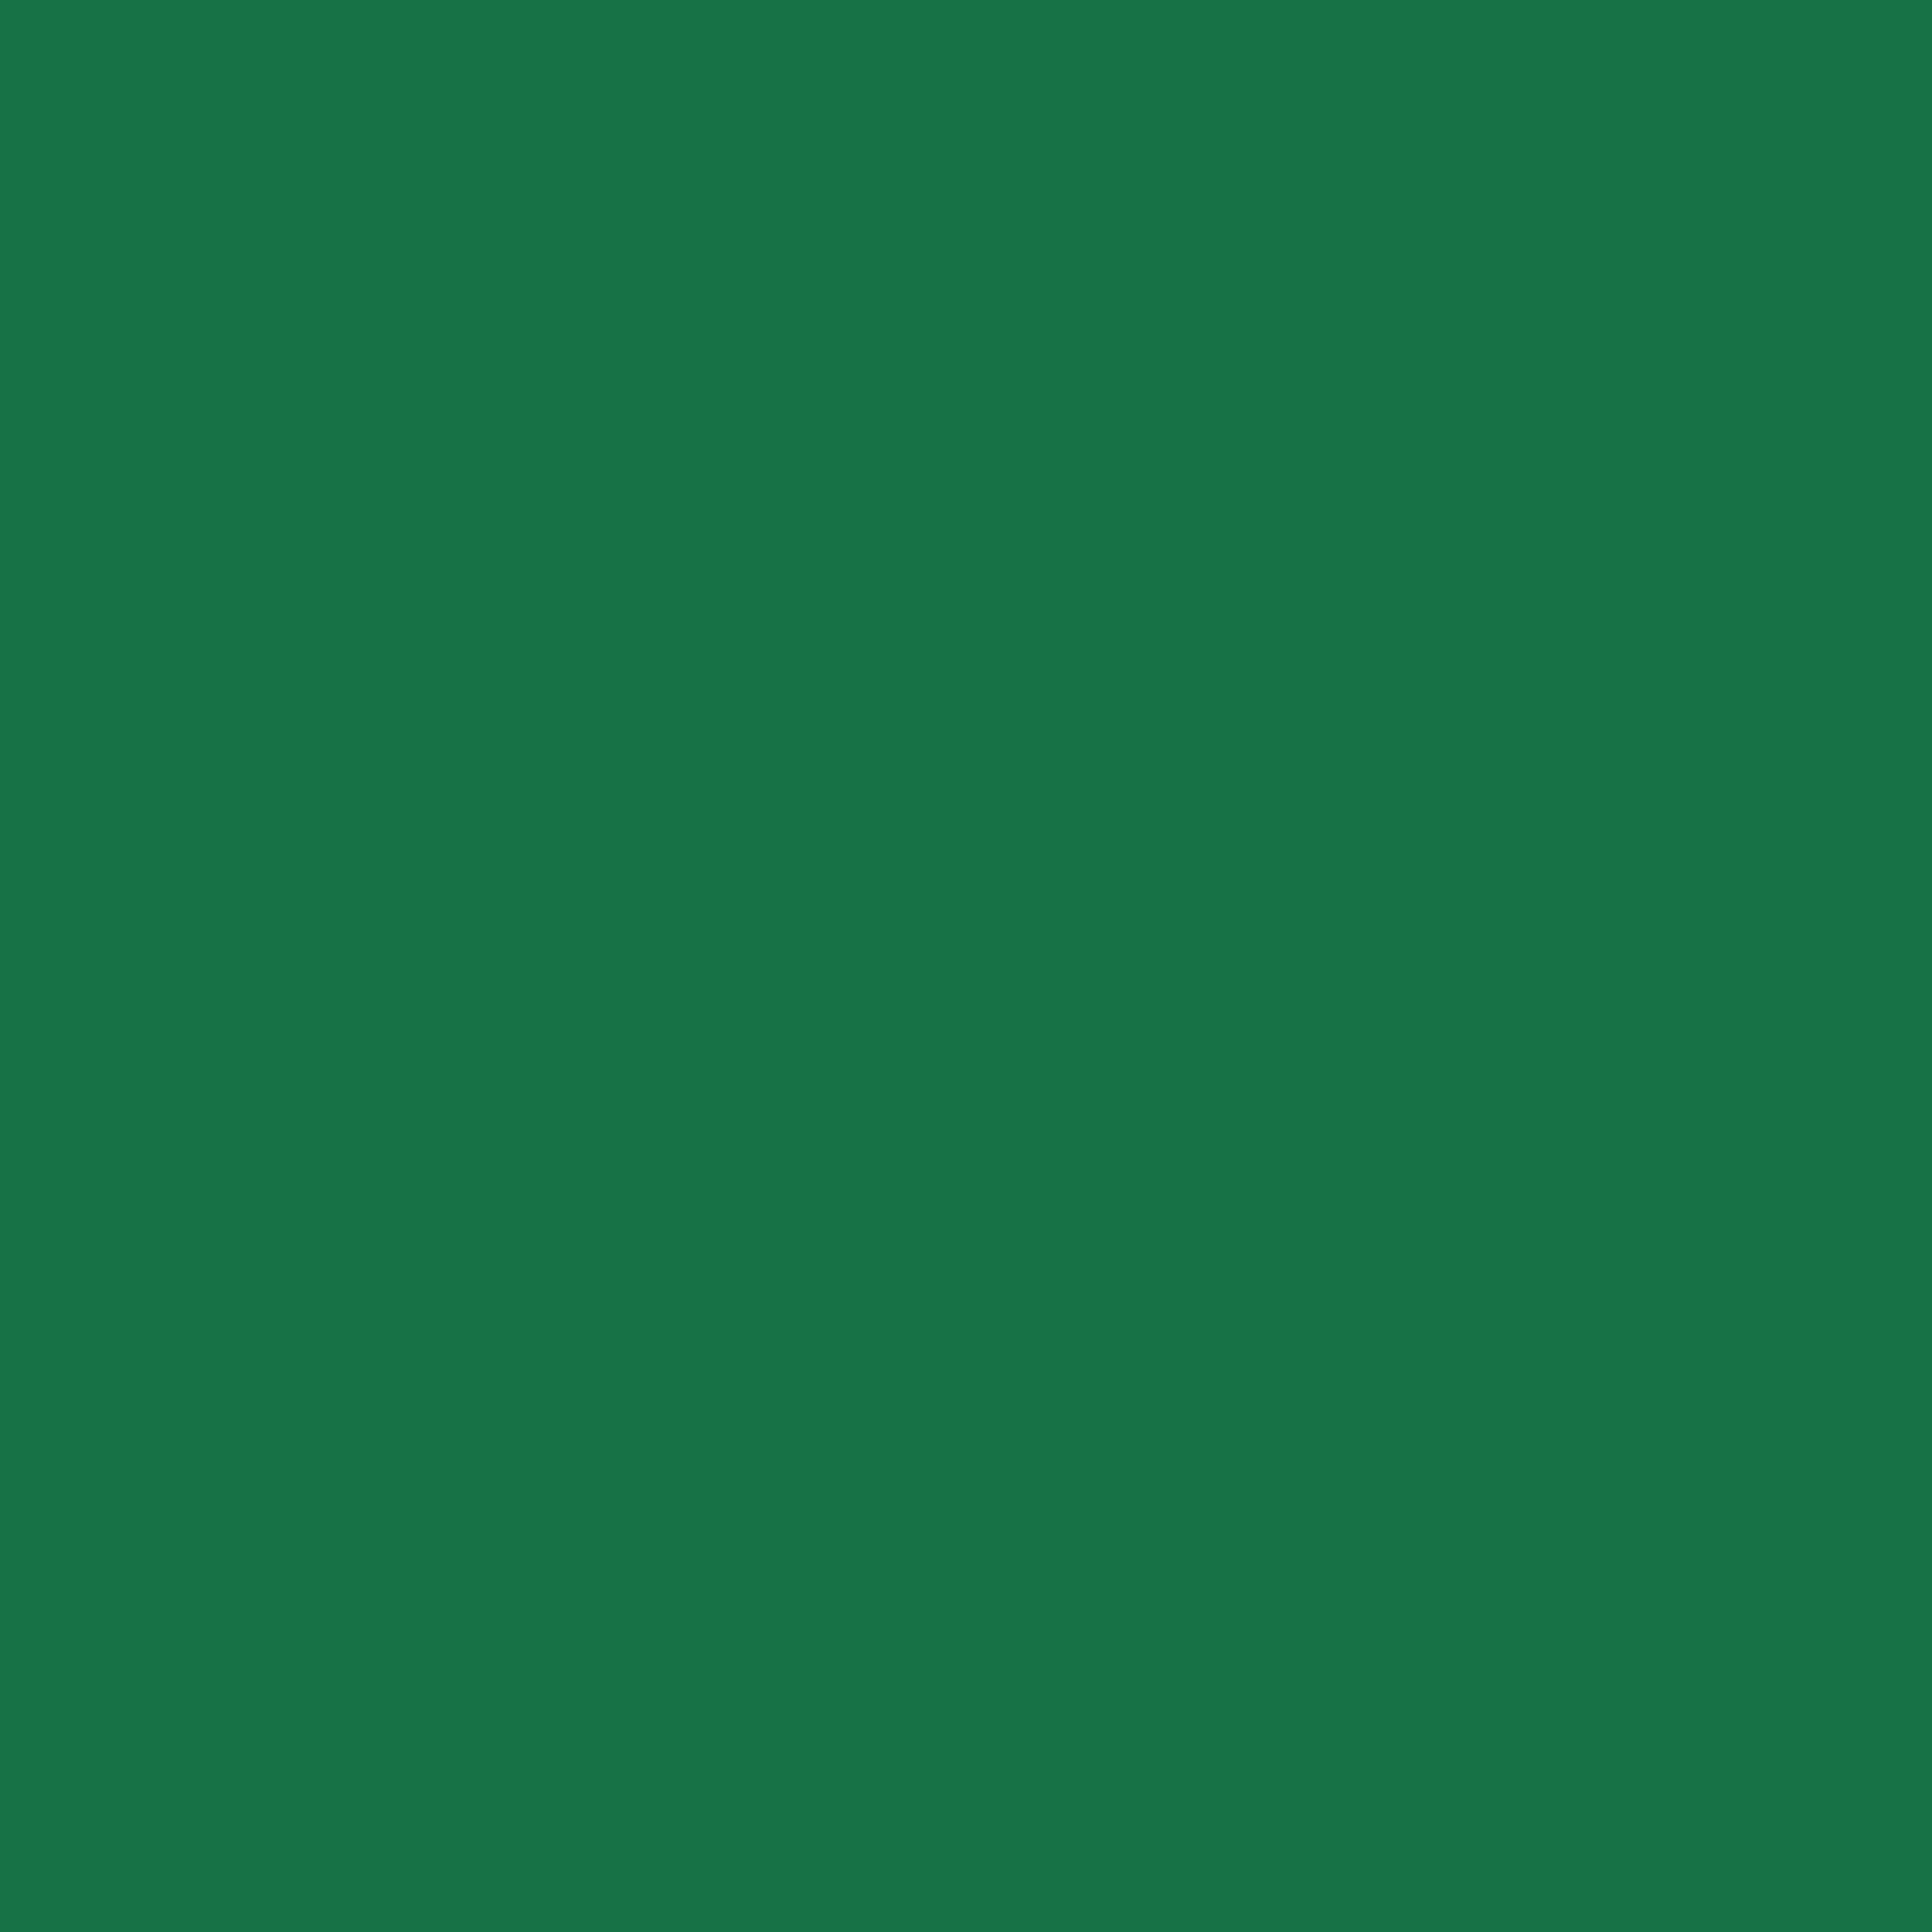 2732x2732 Dark Spring Green Solid Color Background